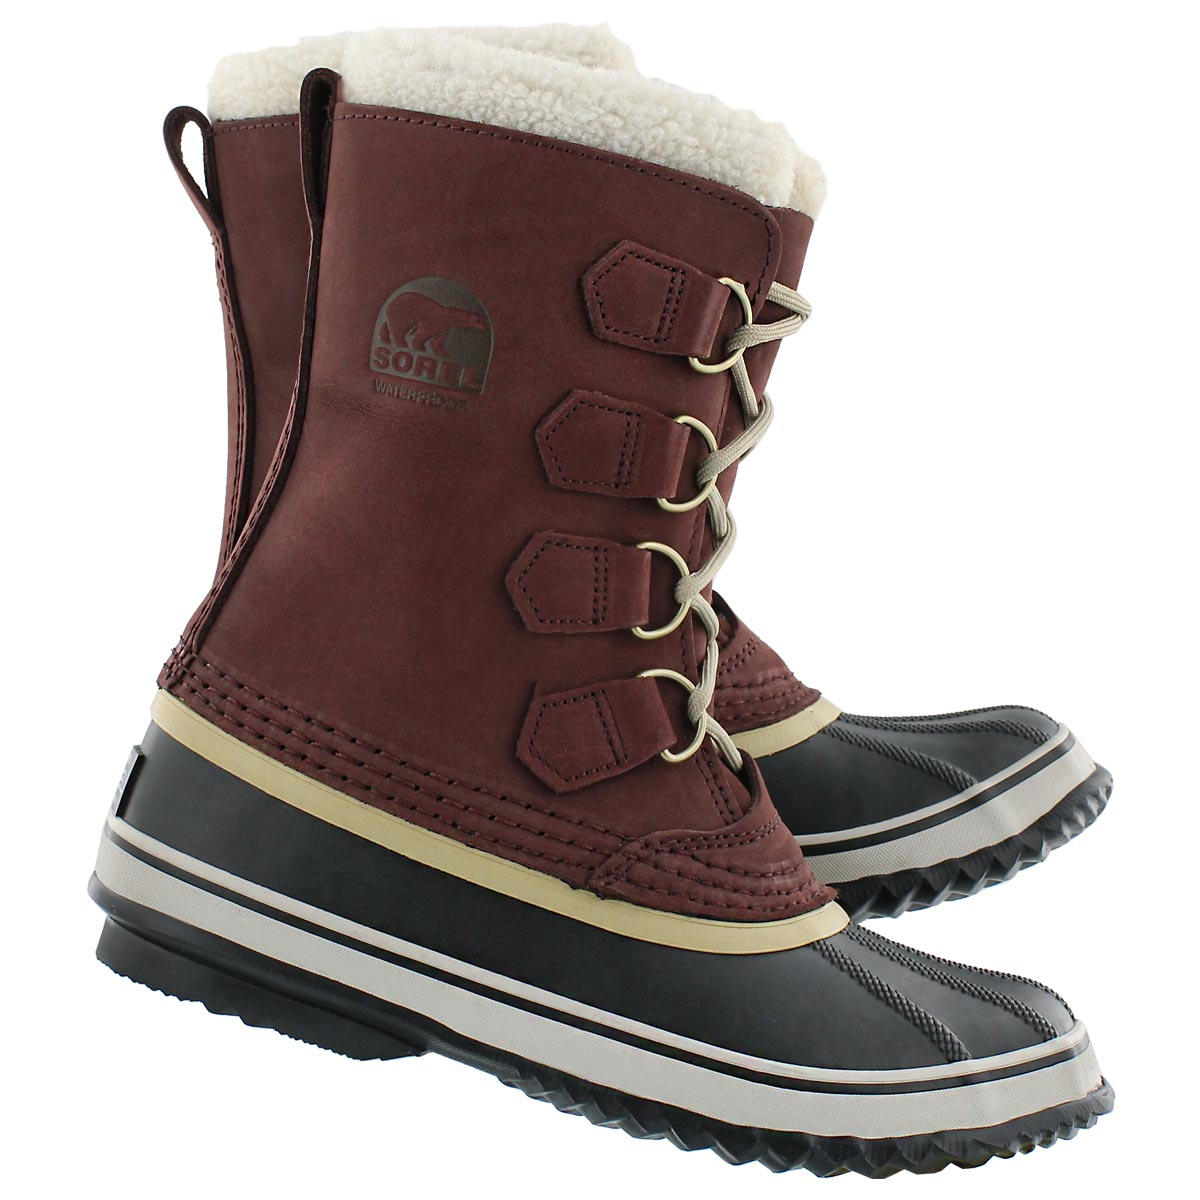 Lds 1964 Pac 2 redwood winter boot